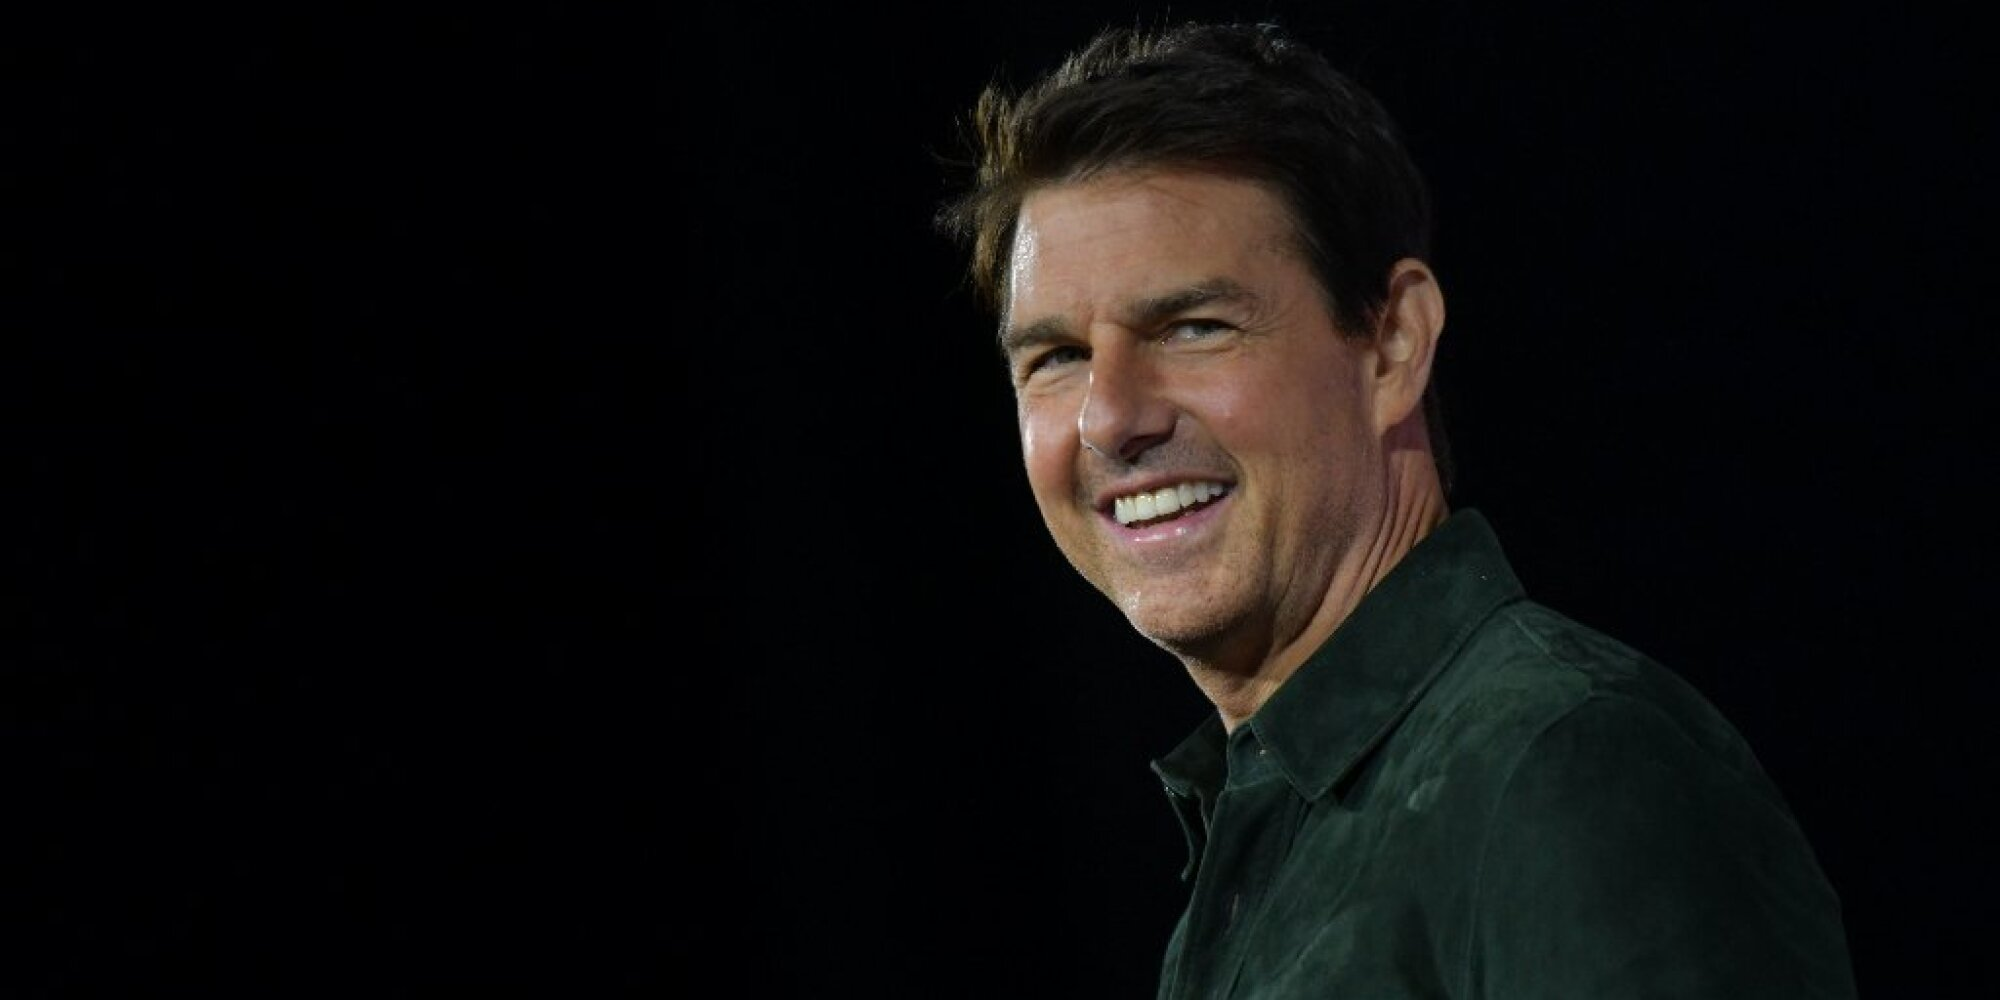 Actor Tom Cruise makes a surprise appearance in Hall H to promote Top Gun: Maverick at the Convention Center during Comic Con in San Diego, California on July 18, 2019.